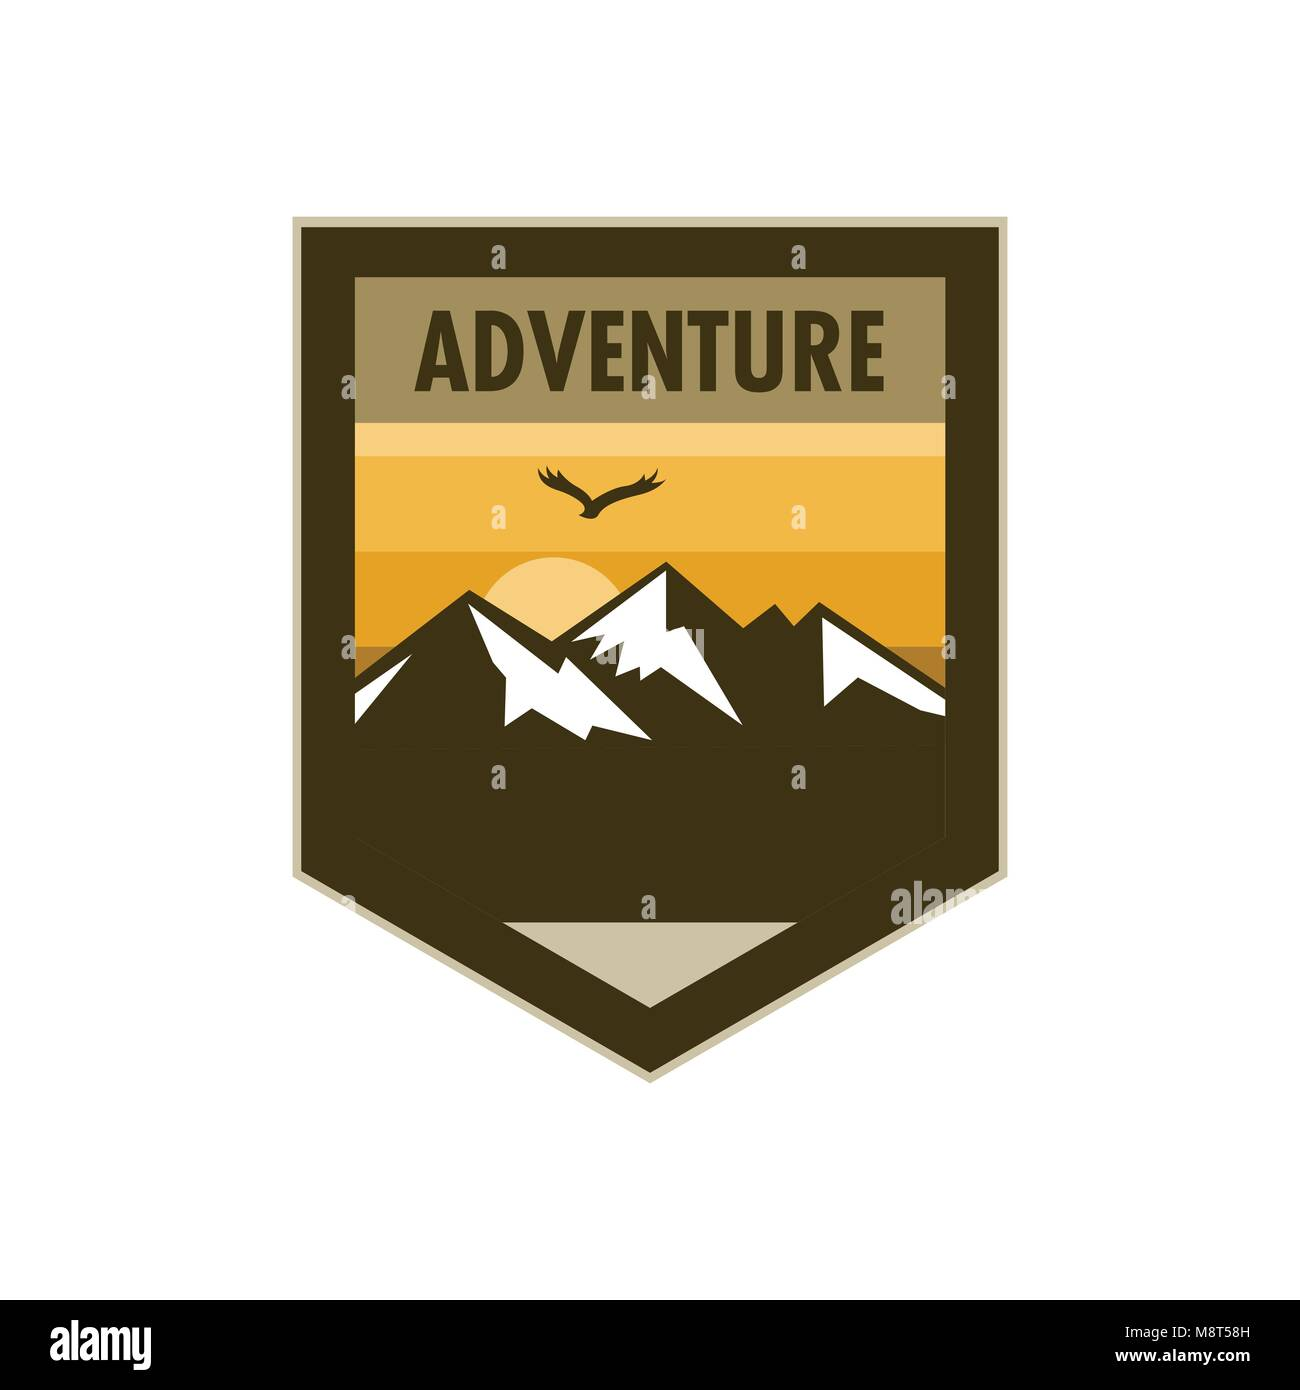 Orange Scene Mountain Adventure Edgy Shield Badge Vector Illustration Graphic Design - Stock Vector